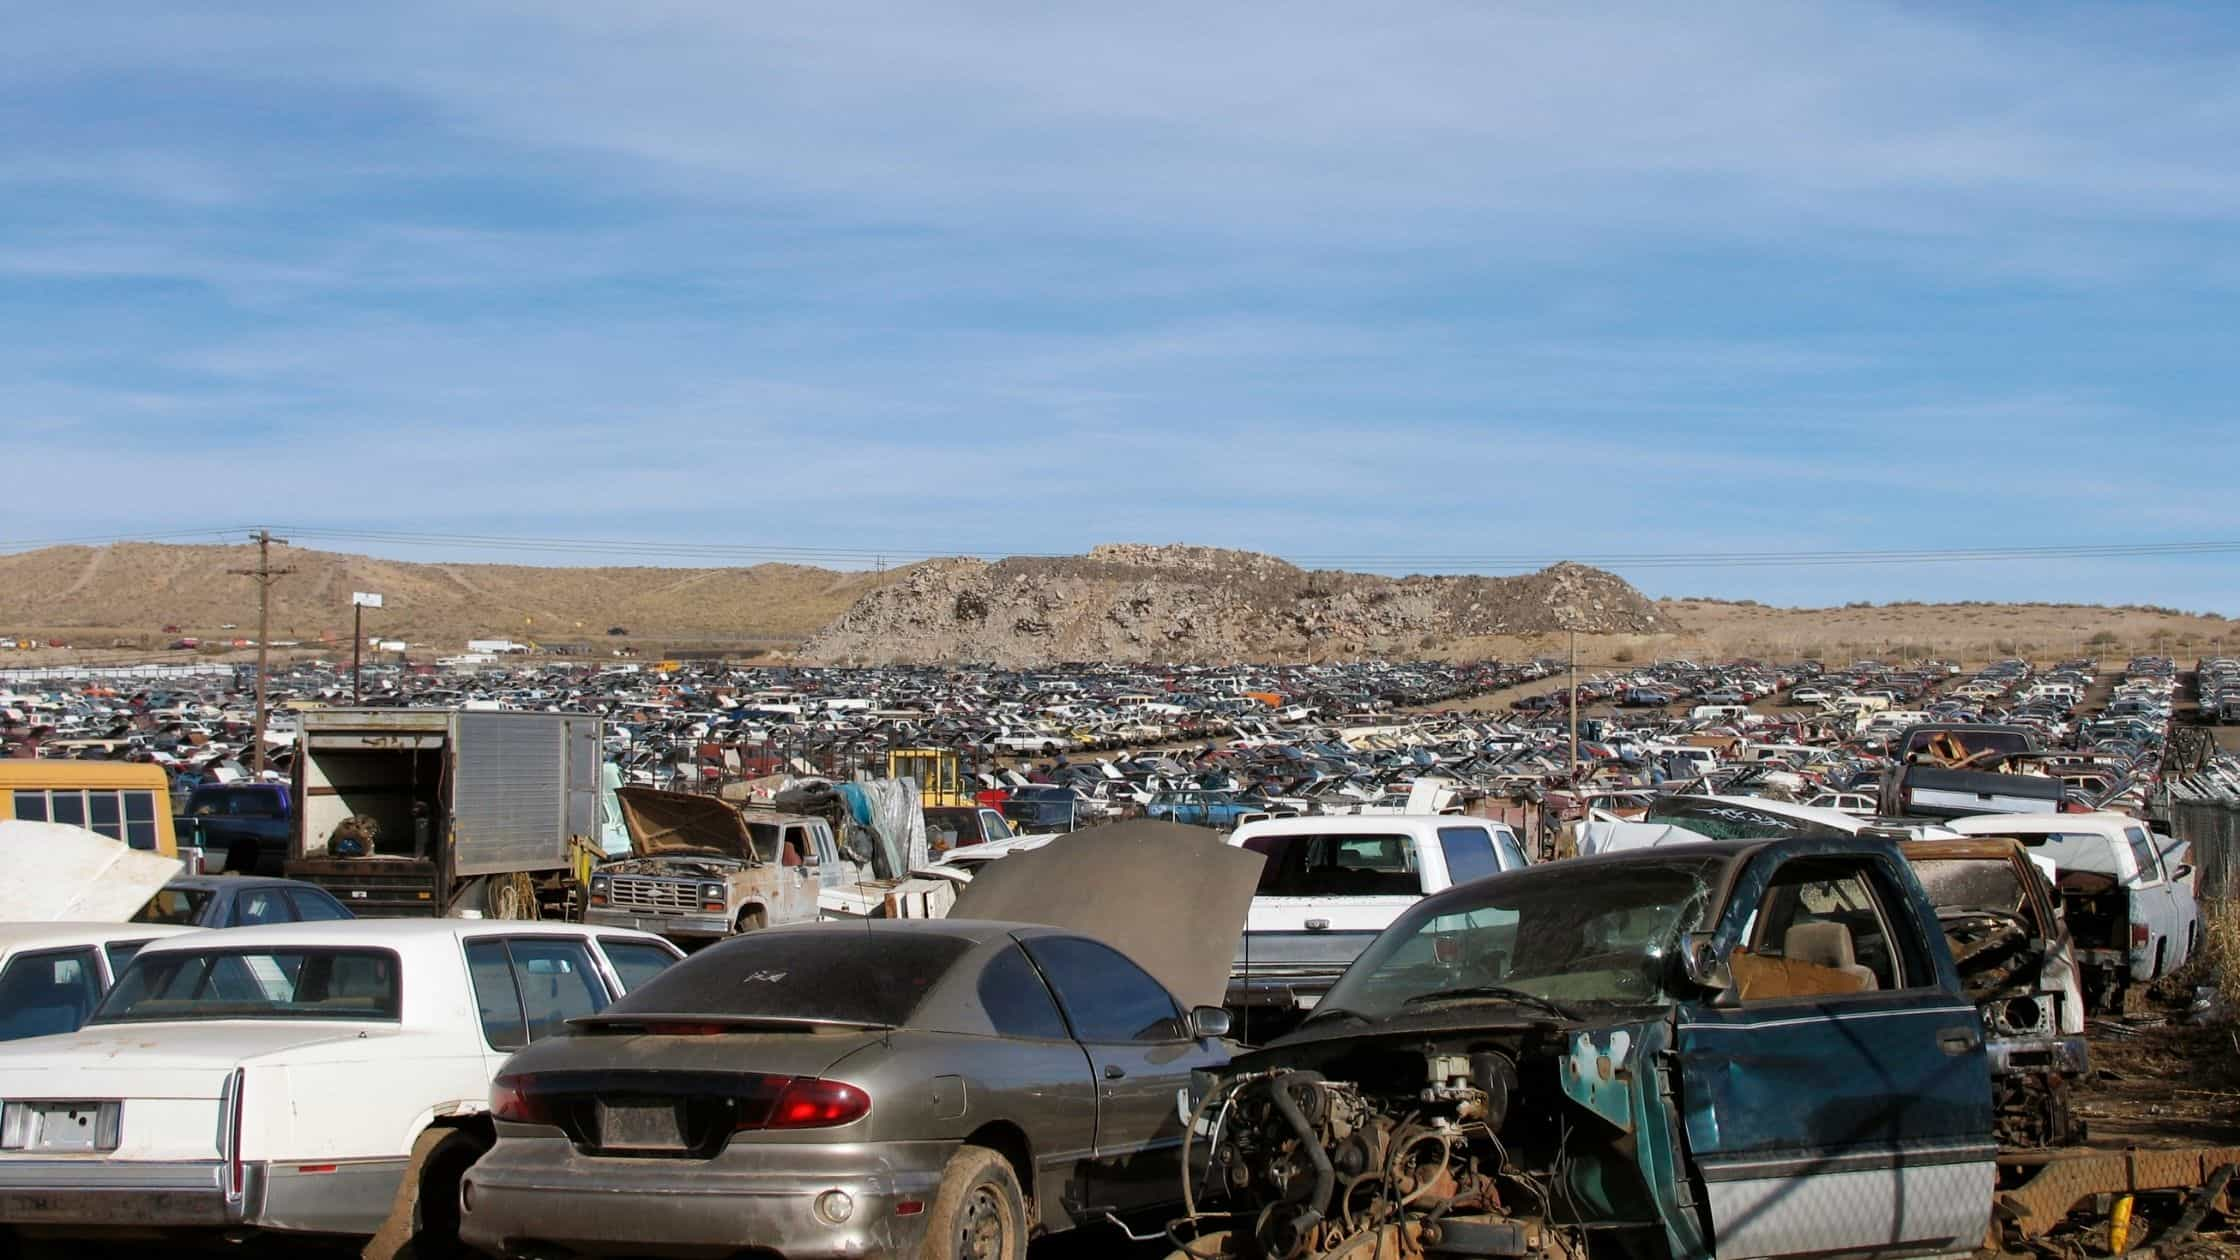 pick and pull junk yards